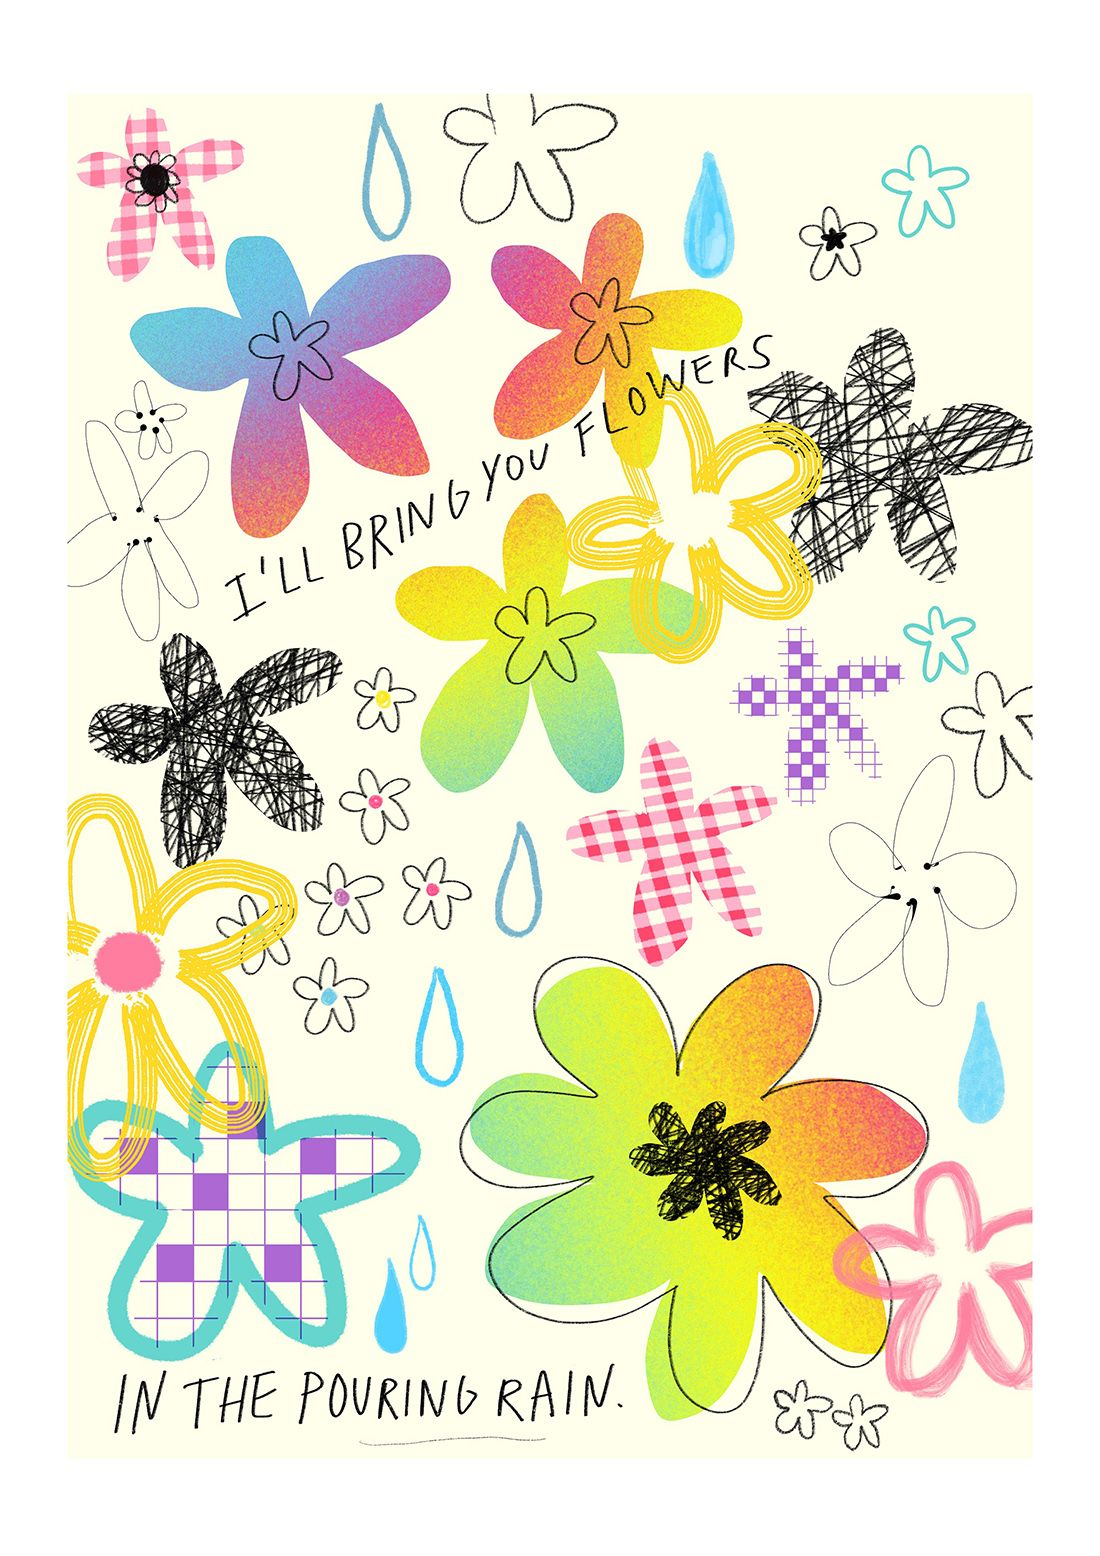 'I'll bring you flowers in the pouring rain' - A4 print